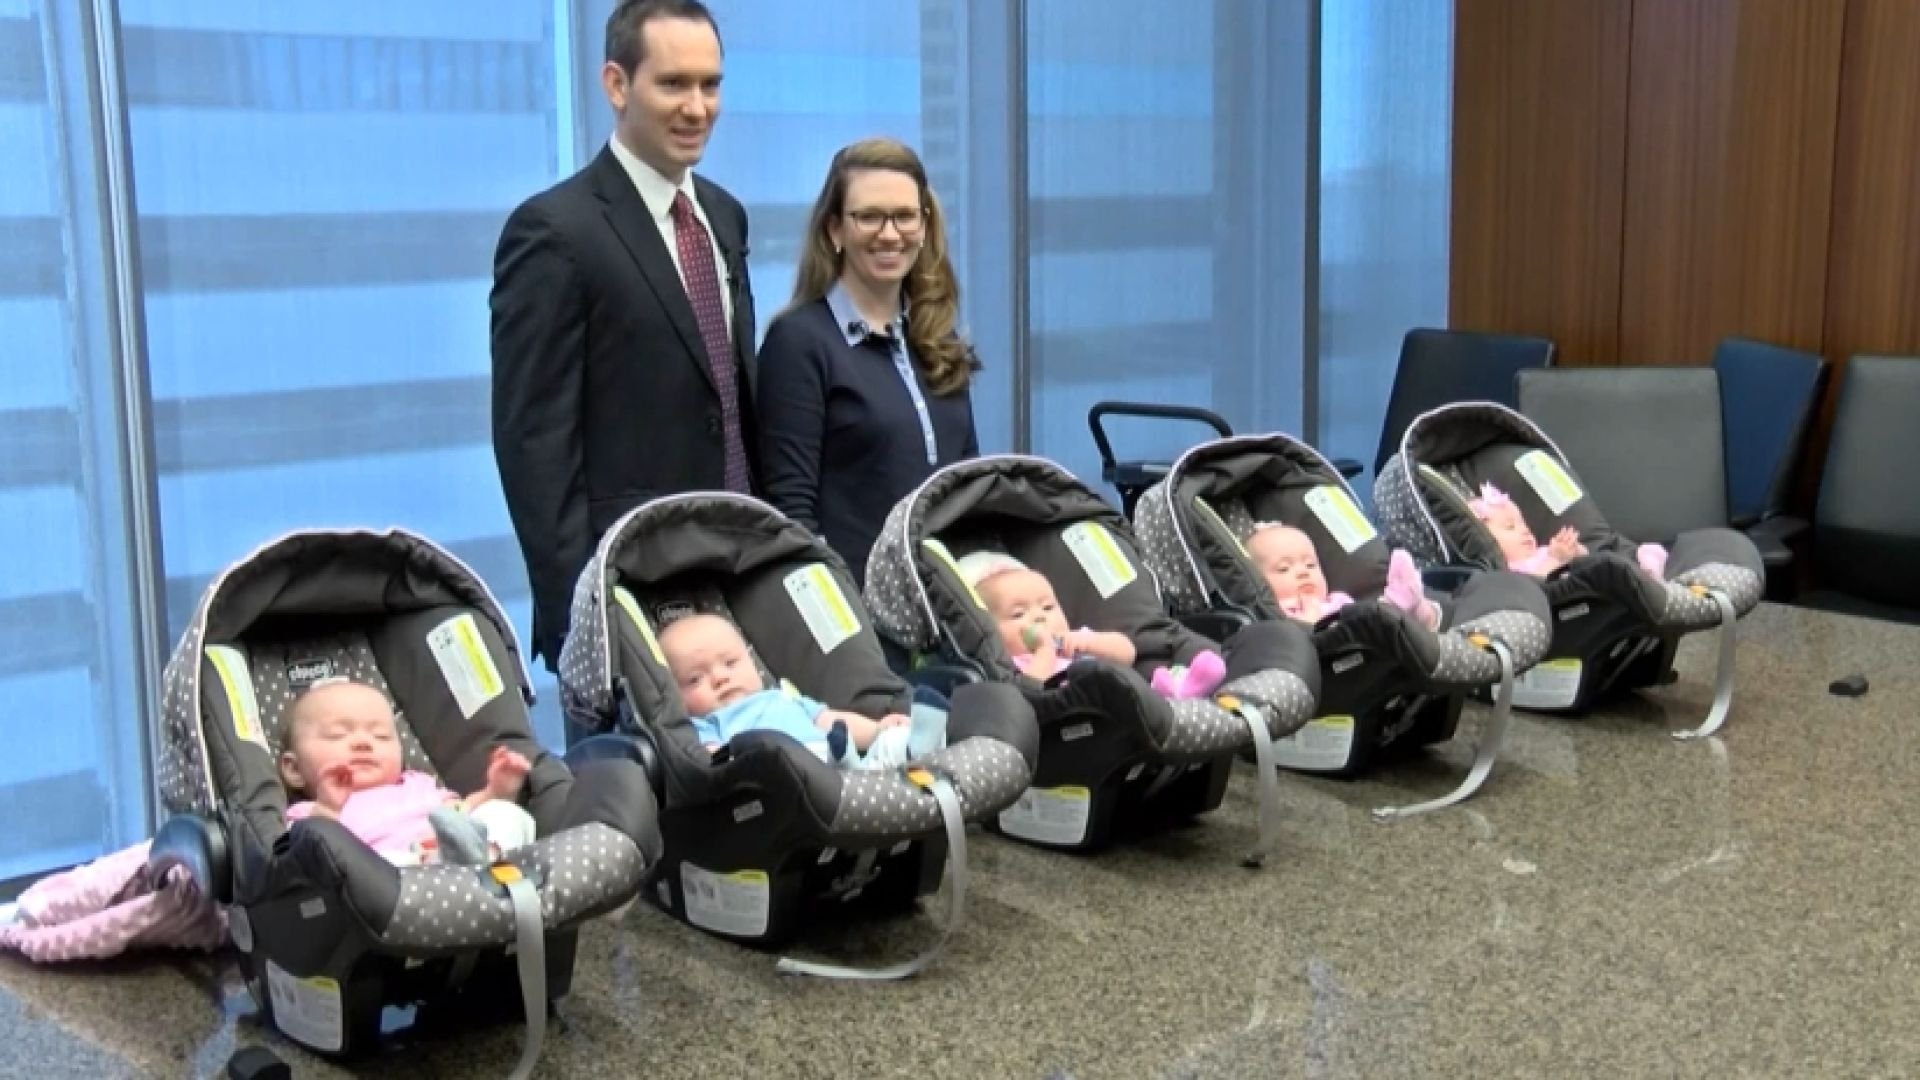 Agroup of quintuplets make their debut in their hometown.